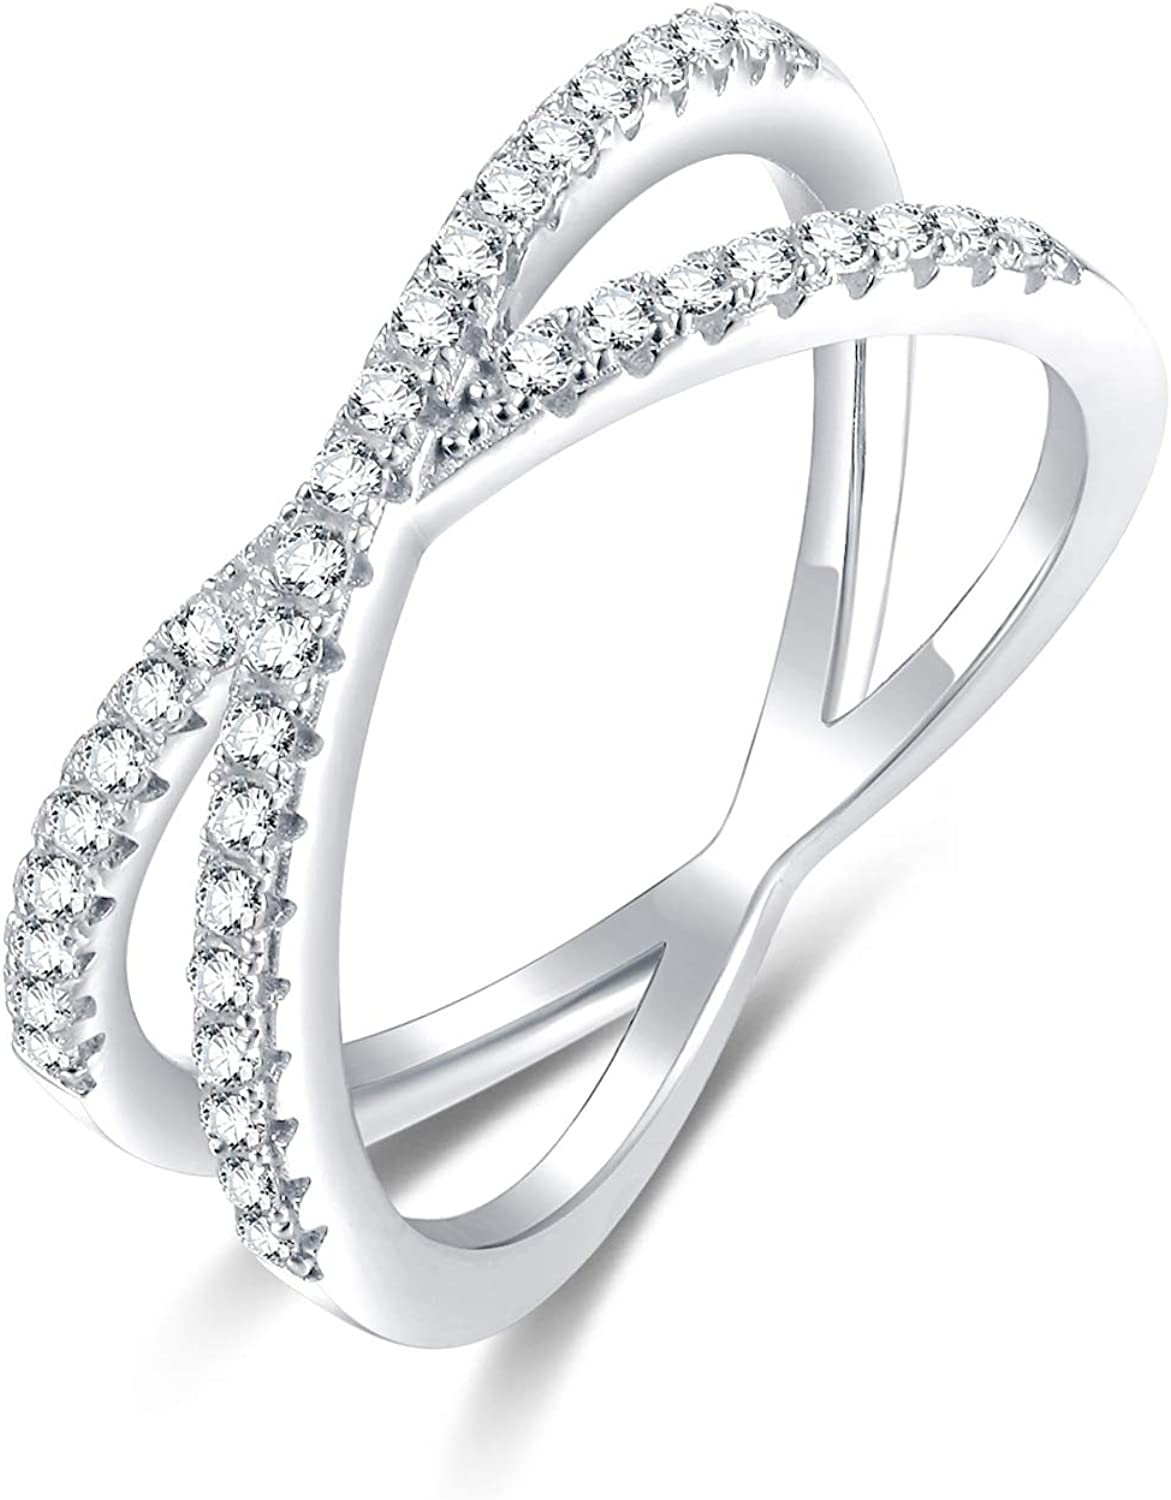 SOMEN TUNGSTEN 925 Sterling Silver Criss Cross Rings CZ Eternity Engagement Wedding Band Size 4-13